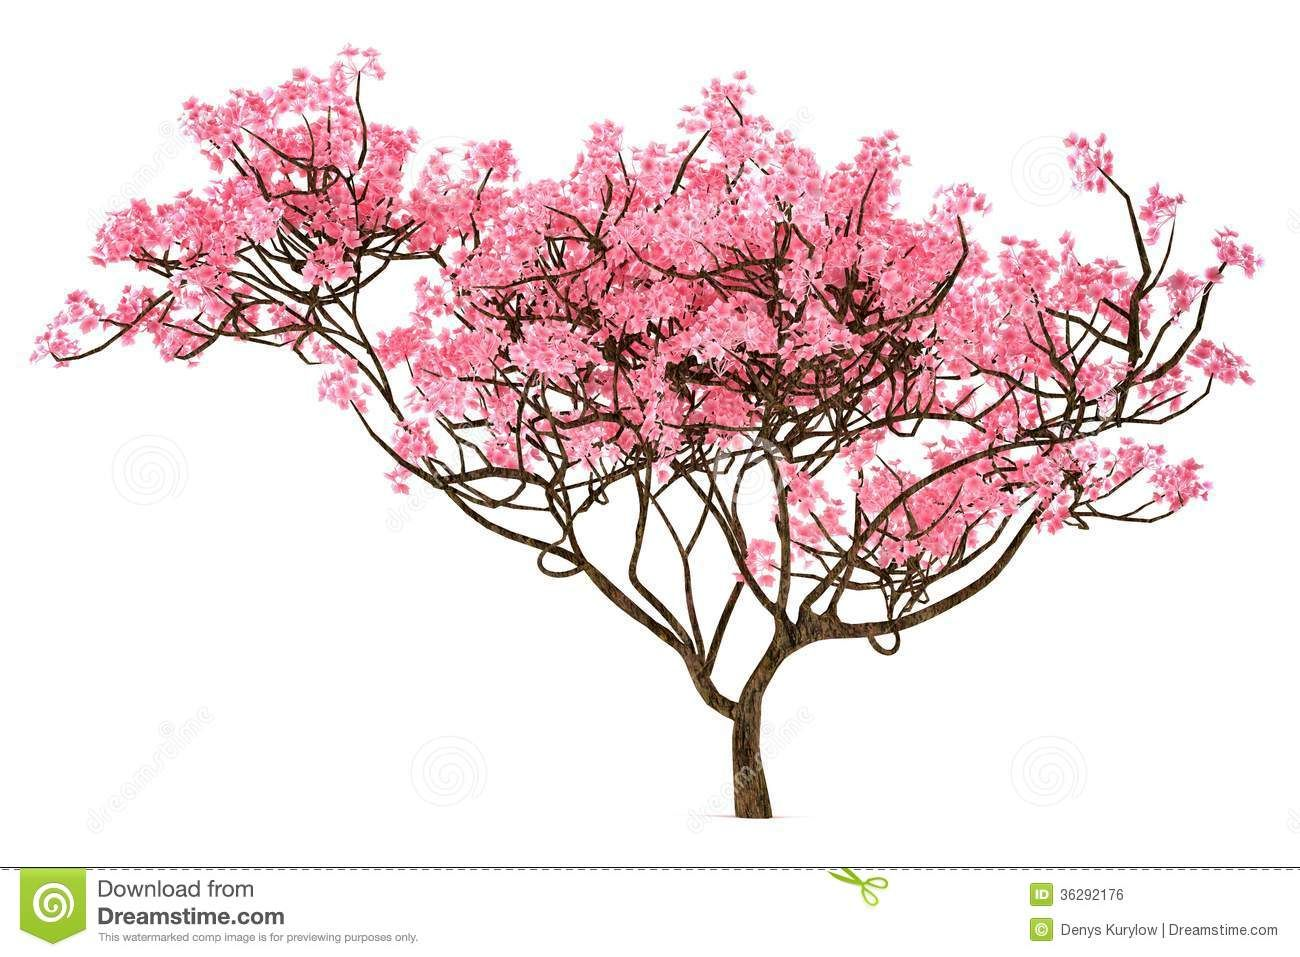 Uncategorized Cherry Blossom Tree Sketch sakura tree isolated royalty free stock photos image 36292158 36292158